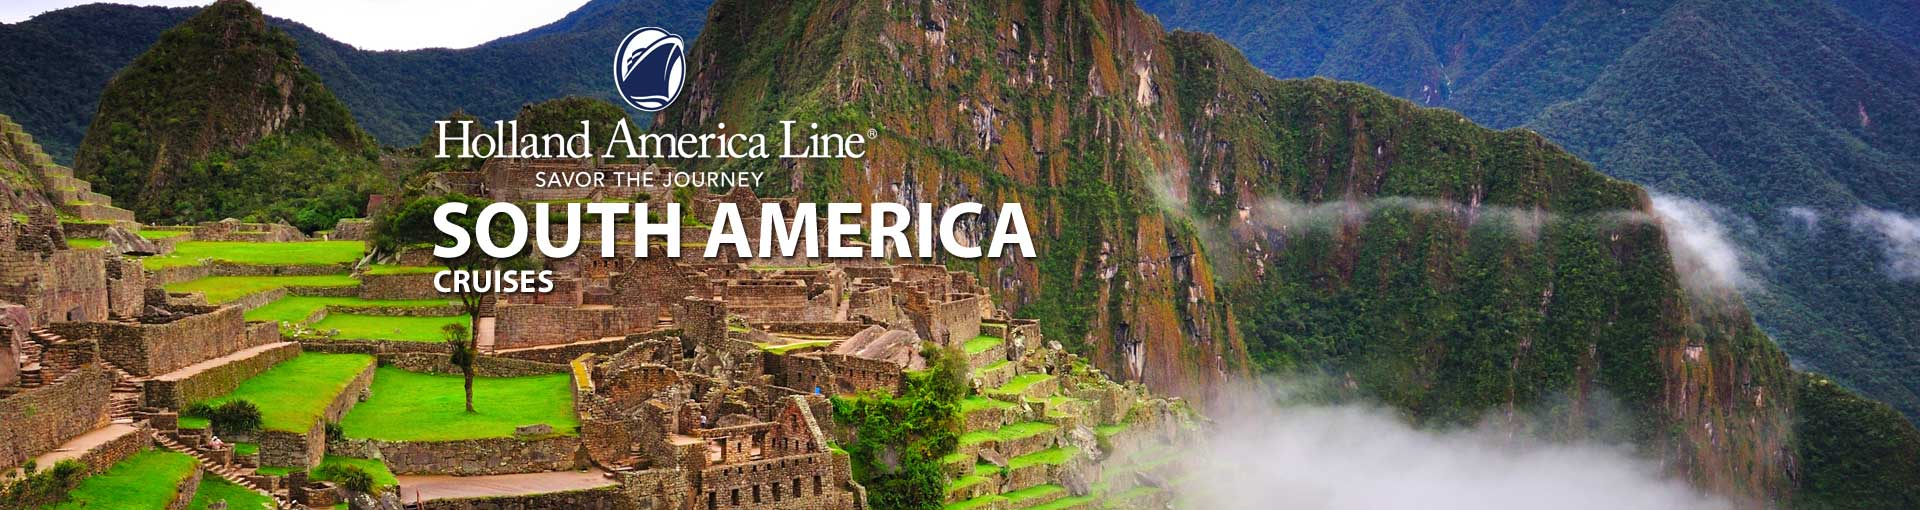 Holland America South America Cruises